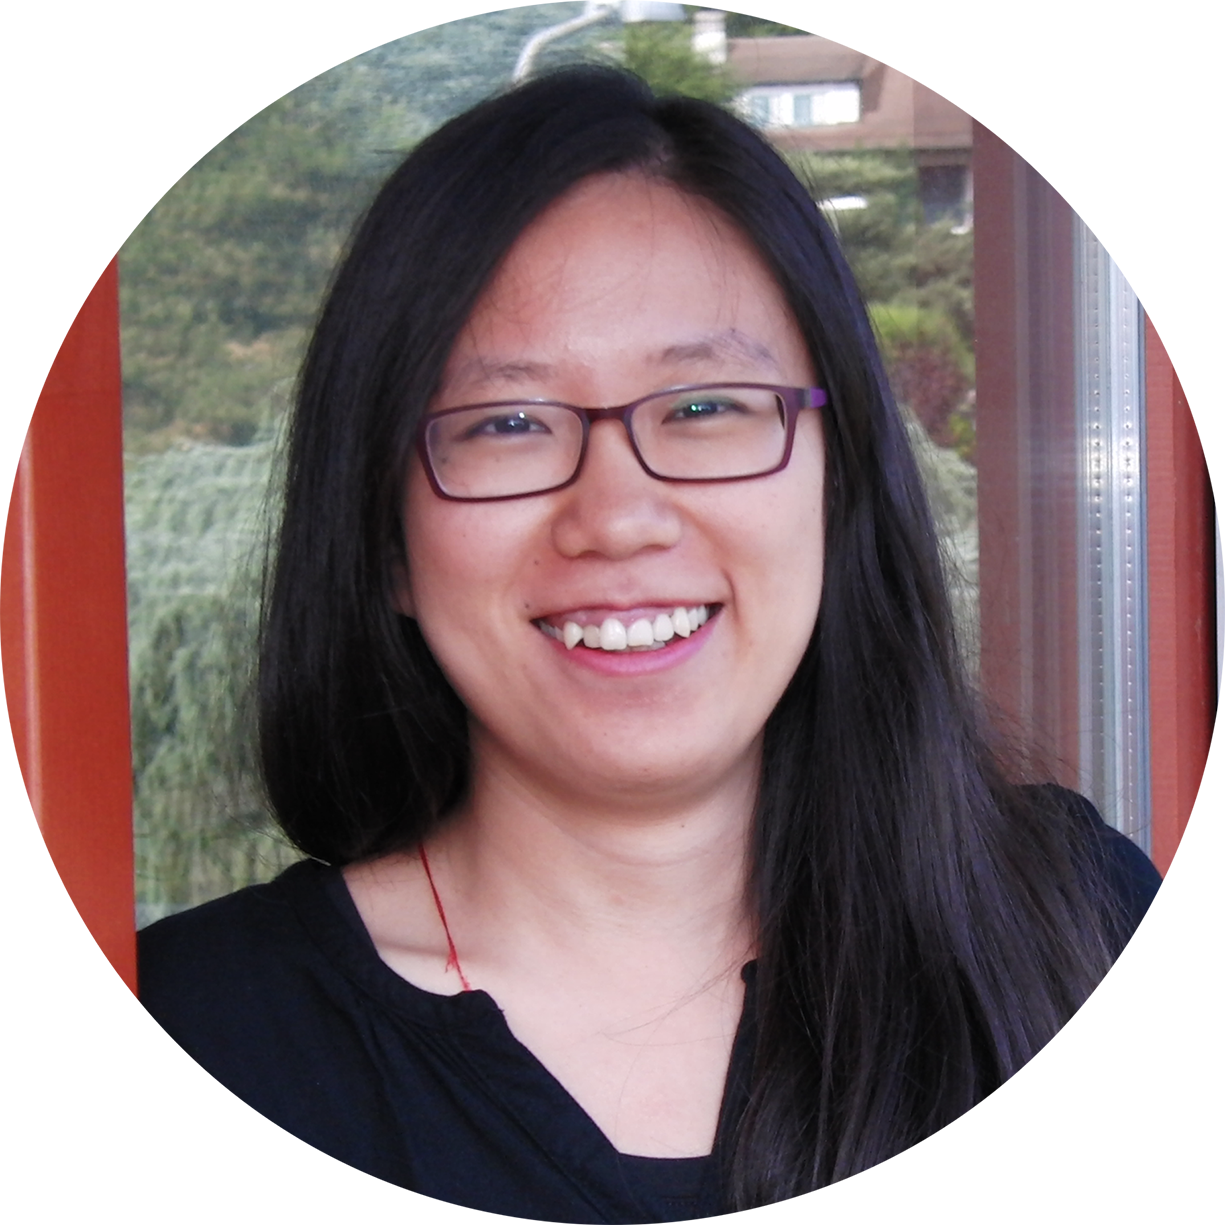 Qifan Zhang, MSc in Management of Technology and Entrepreneurship